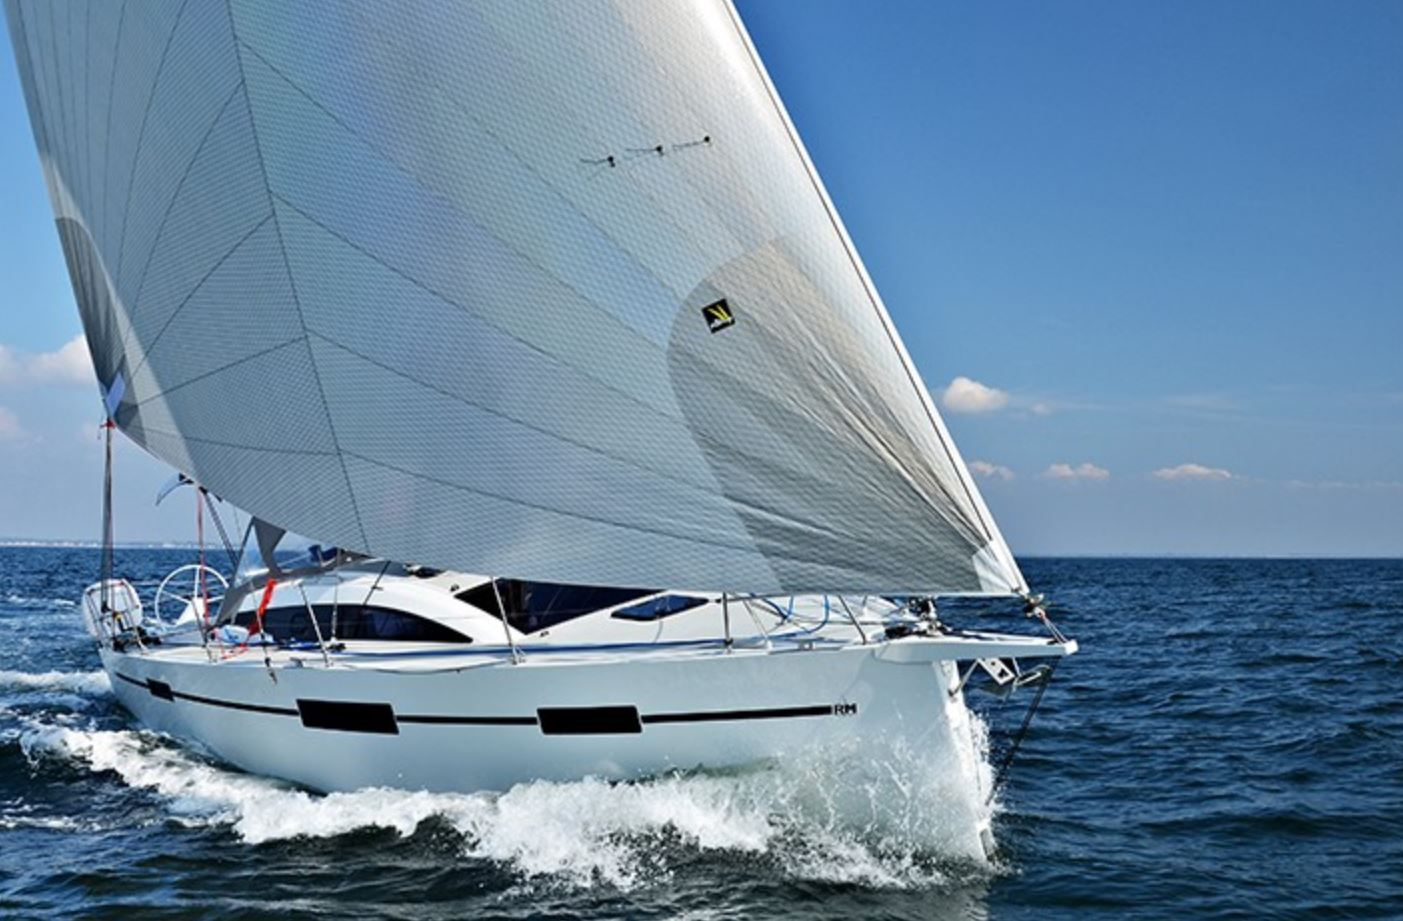 Fora Marine RM Yachts (France) taken over by Grand Large Yachting